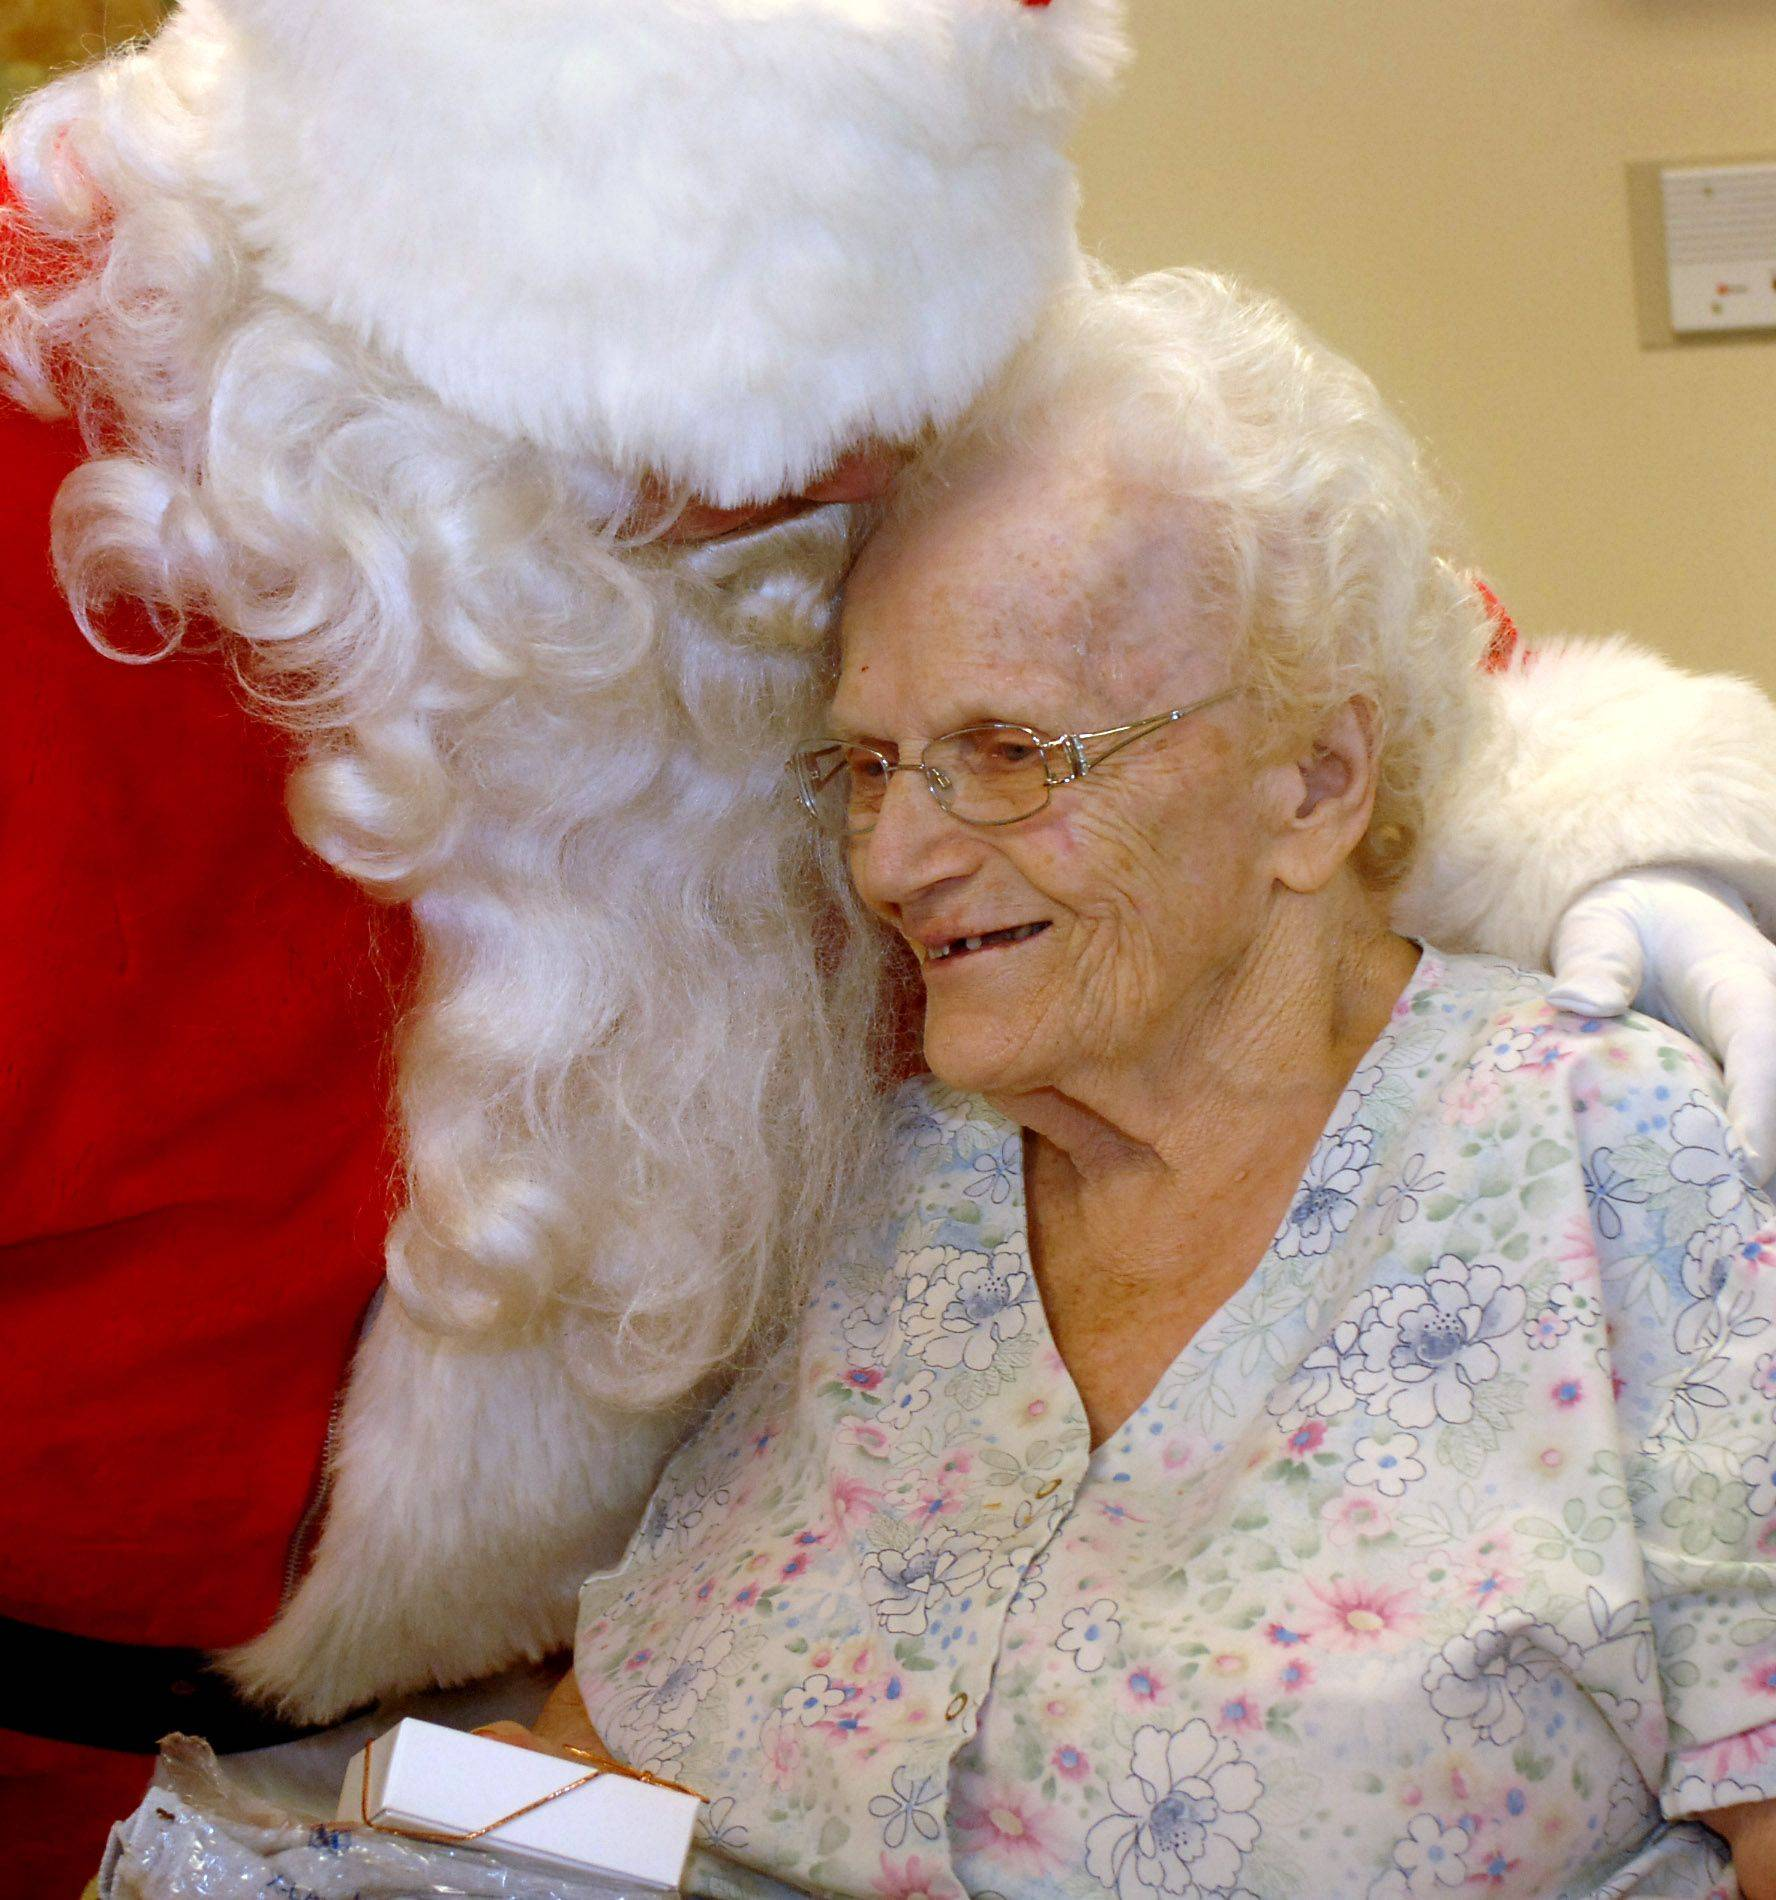 Santa gives a hug to Helen Hecketsweiler of Mundelein during his visit to Winchester House in Libertyville Wednesday during a holiday luncheon held for rehabilitation patients and a few longer-term residents.